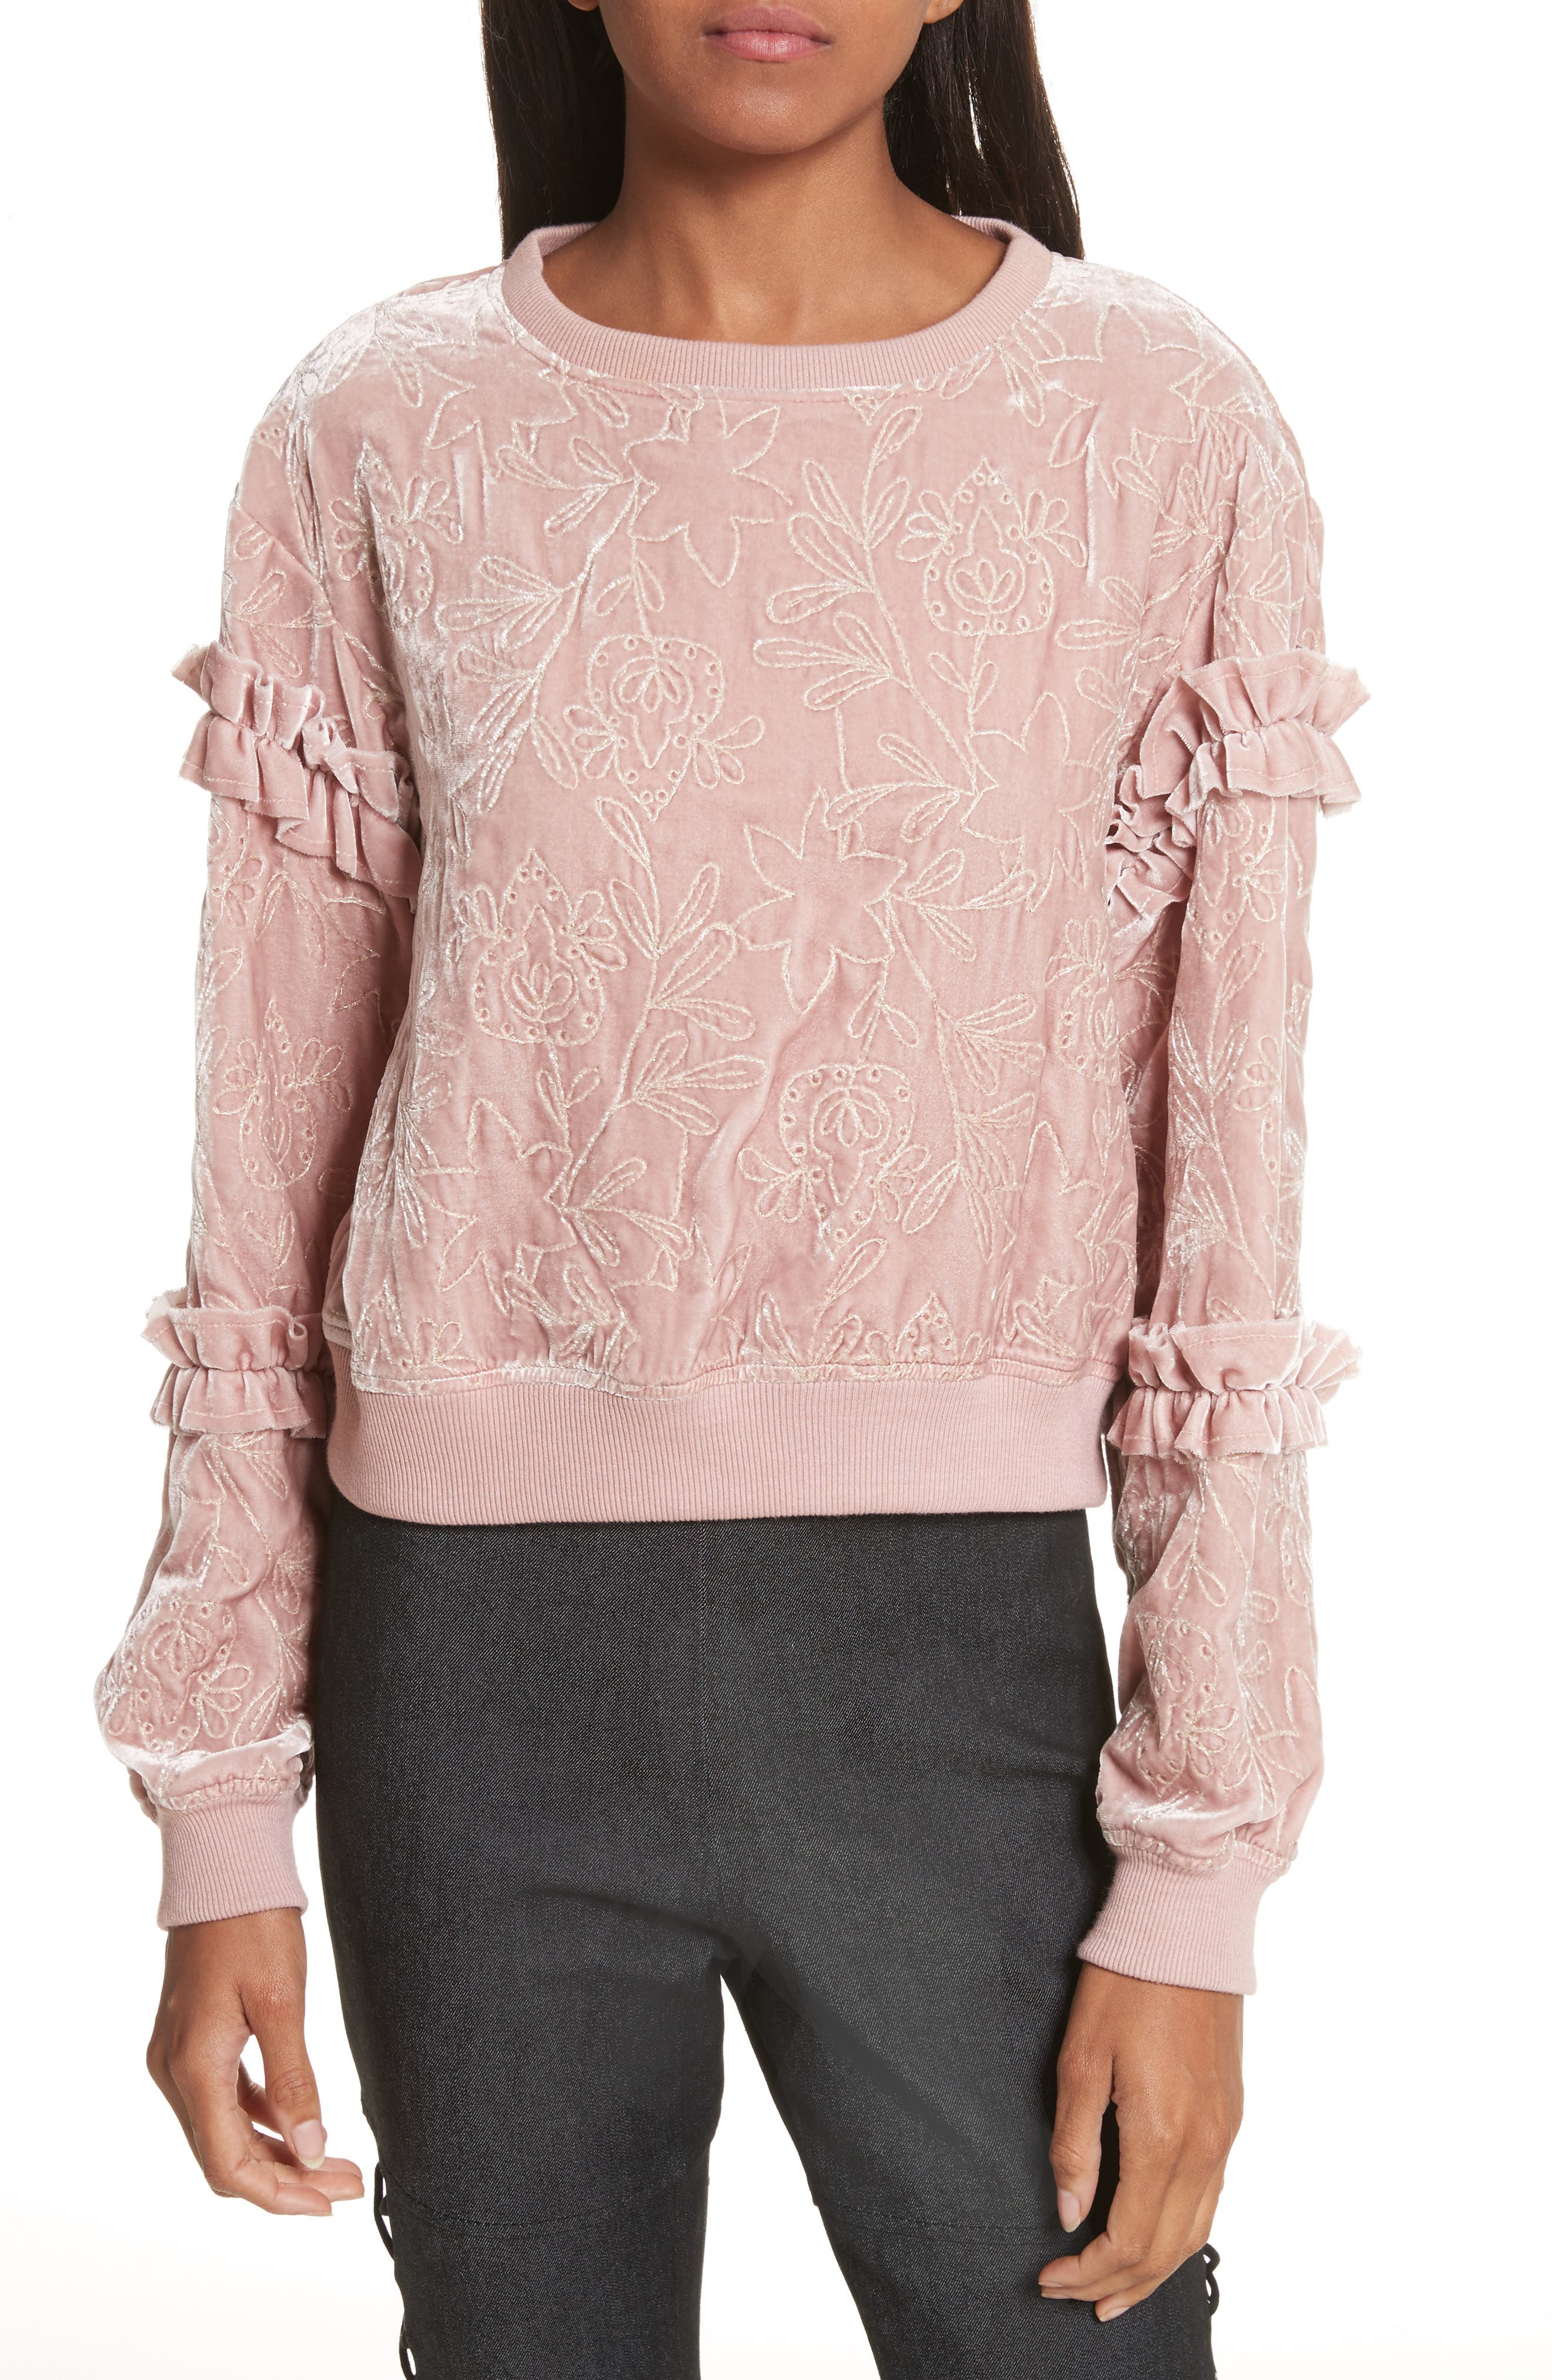 Cinq à Sept Nara Embroidered Velvet Sweatshirt